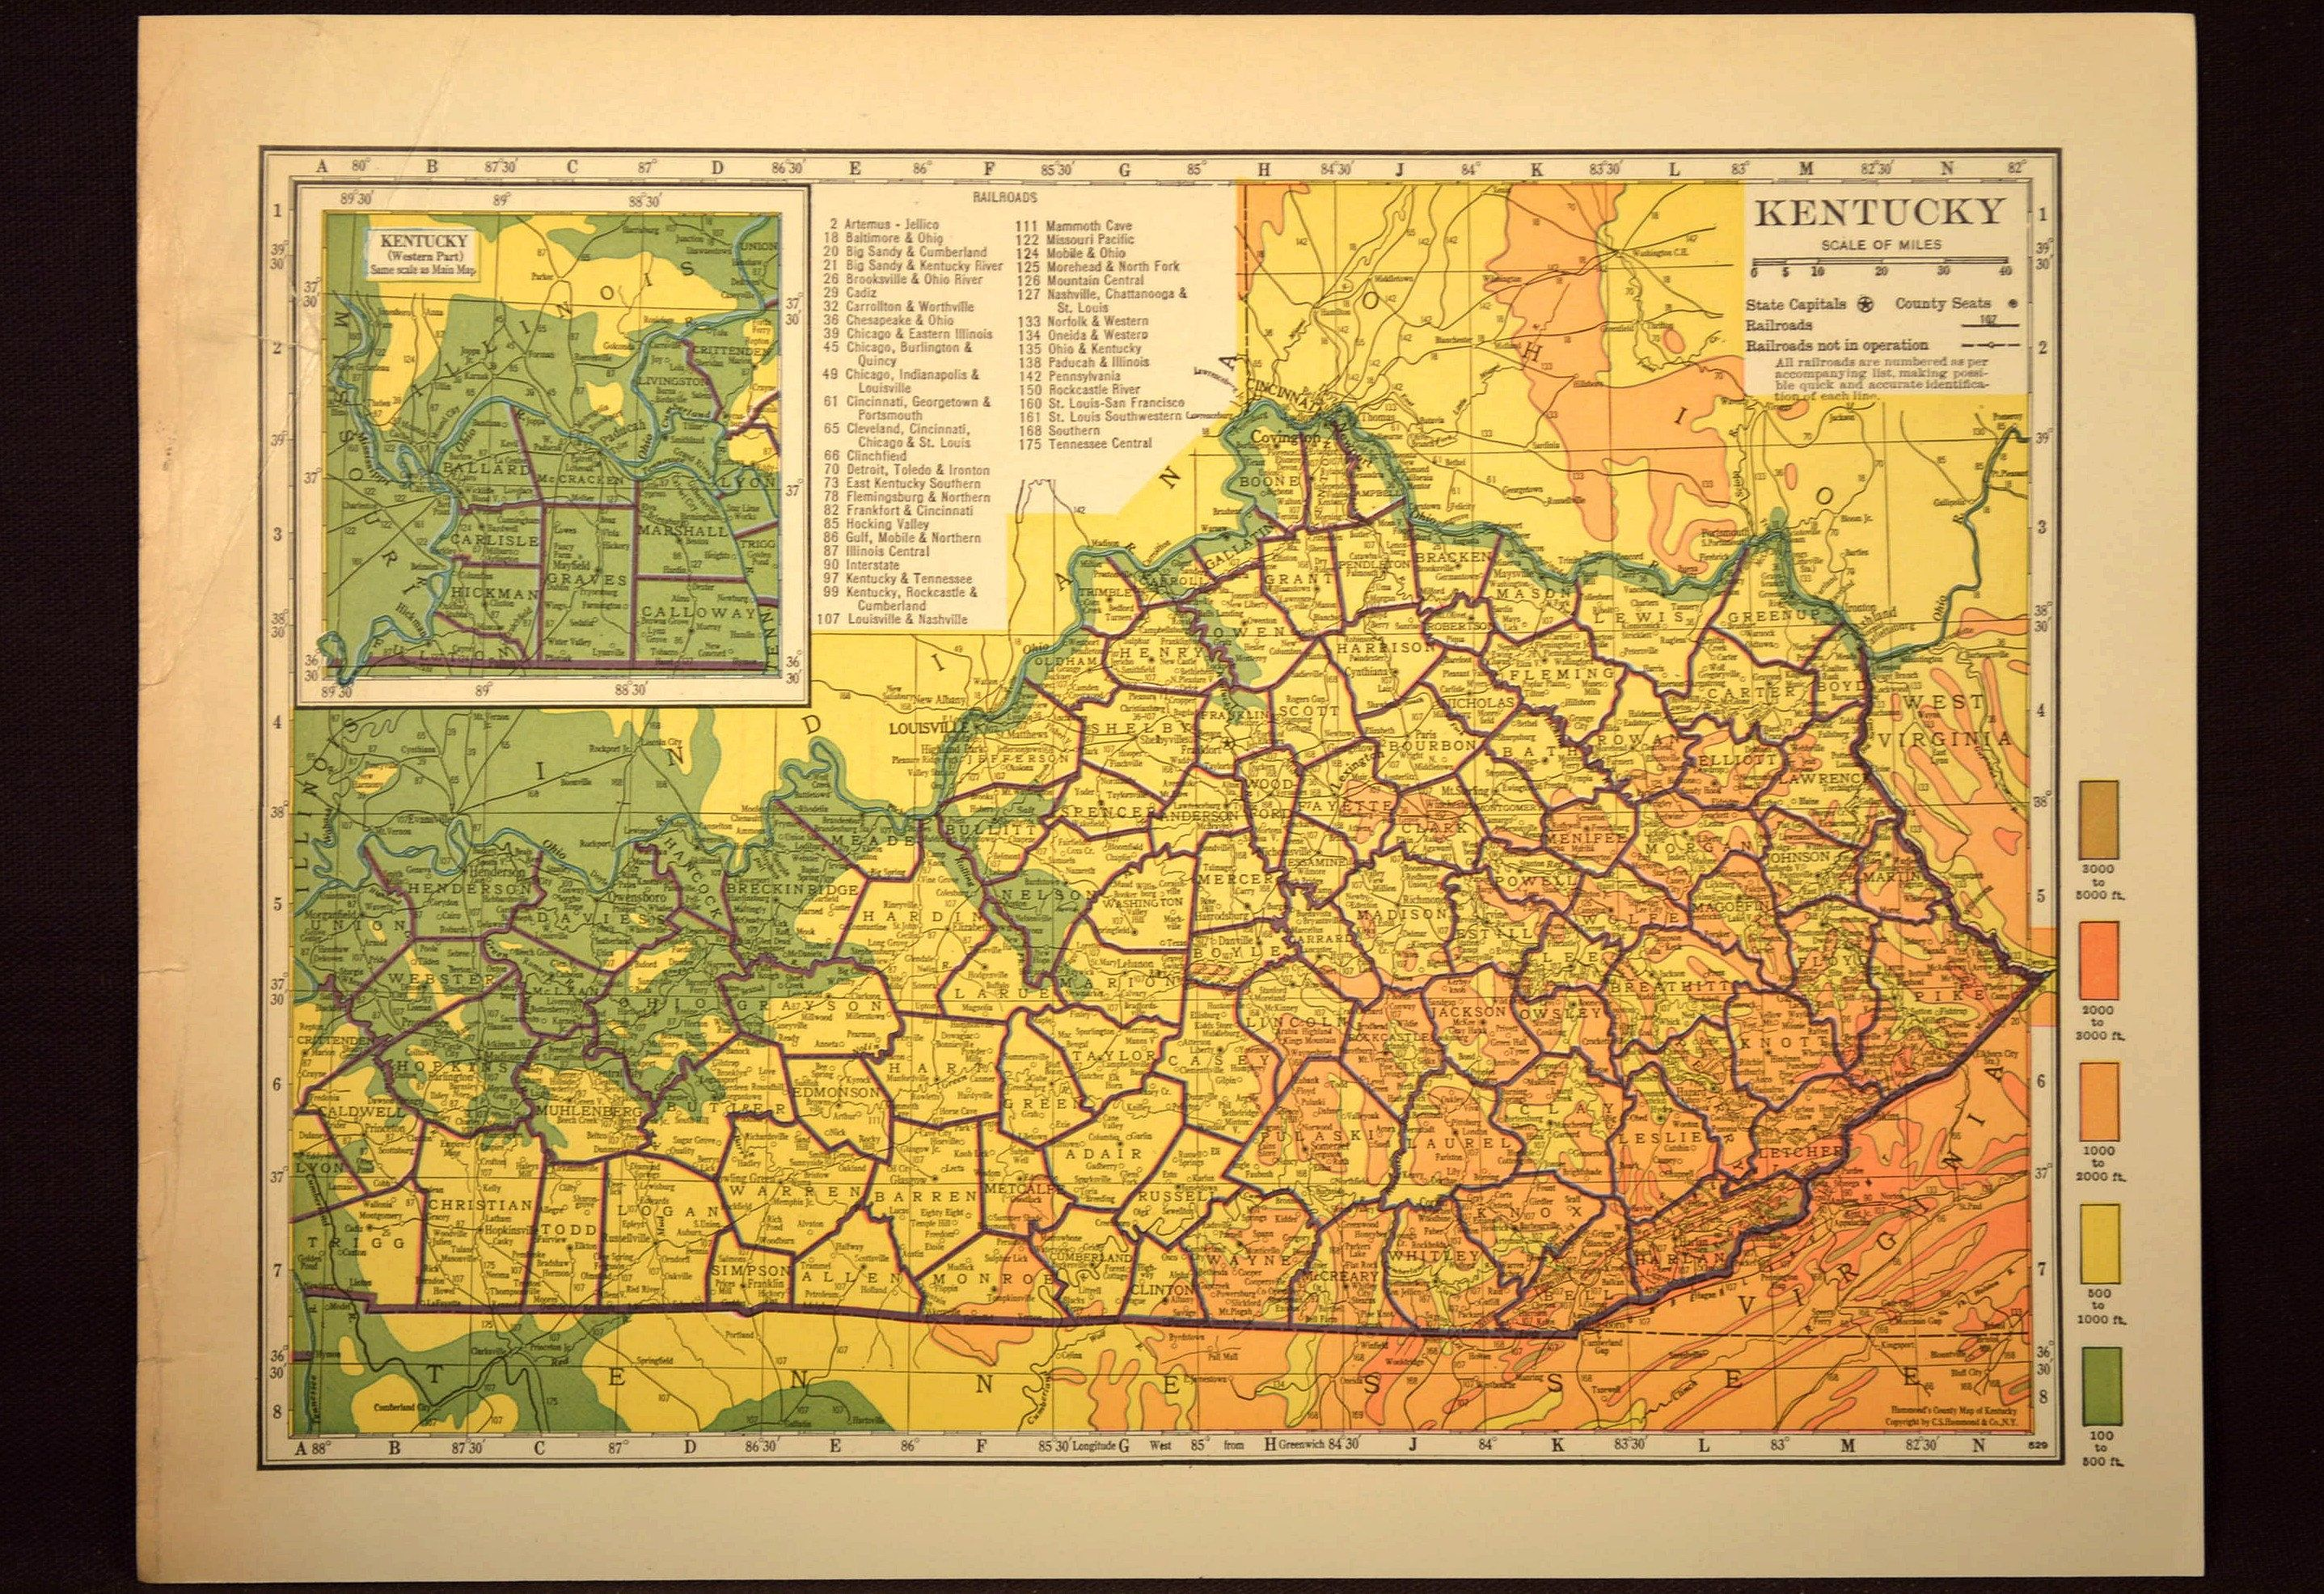 Kentucky Map Kentucky Topographic Map Colorful Colored Topo | Map ...